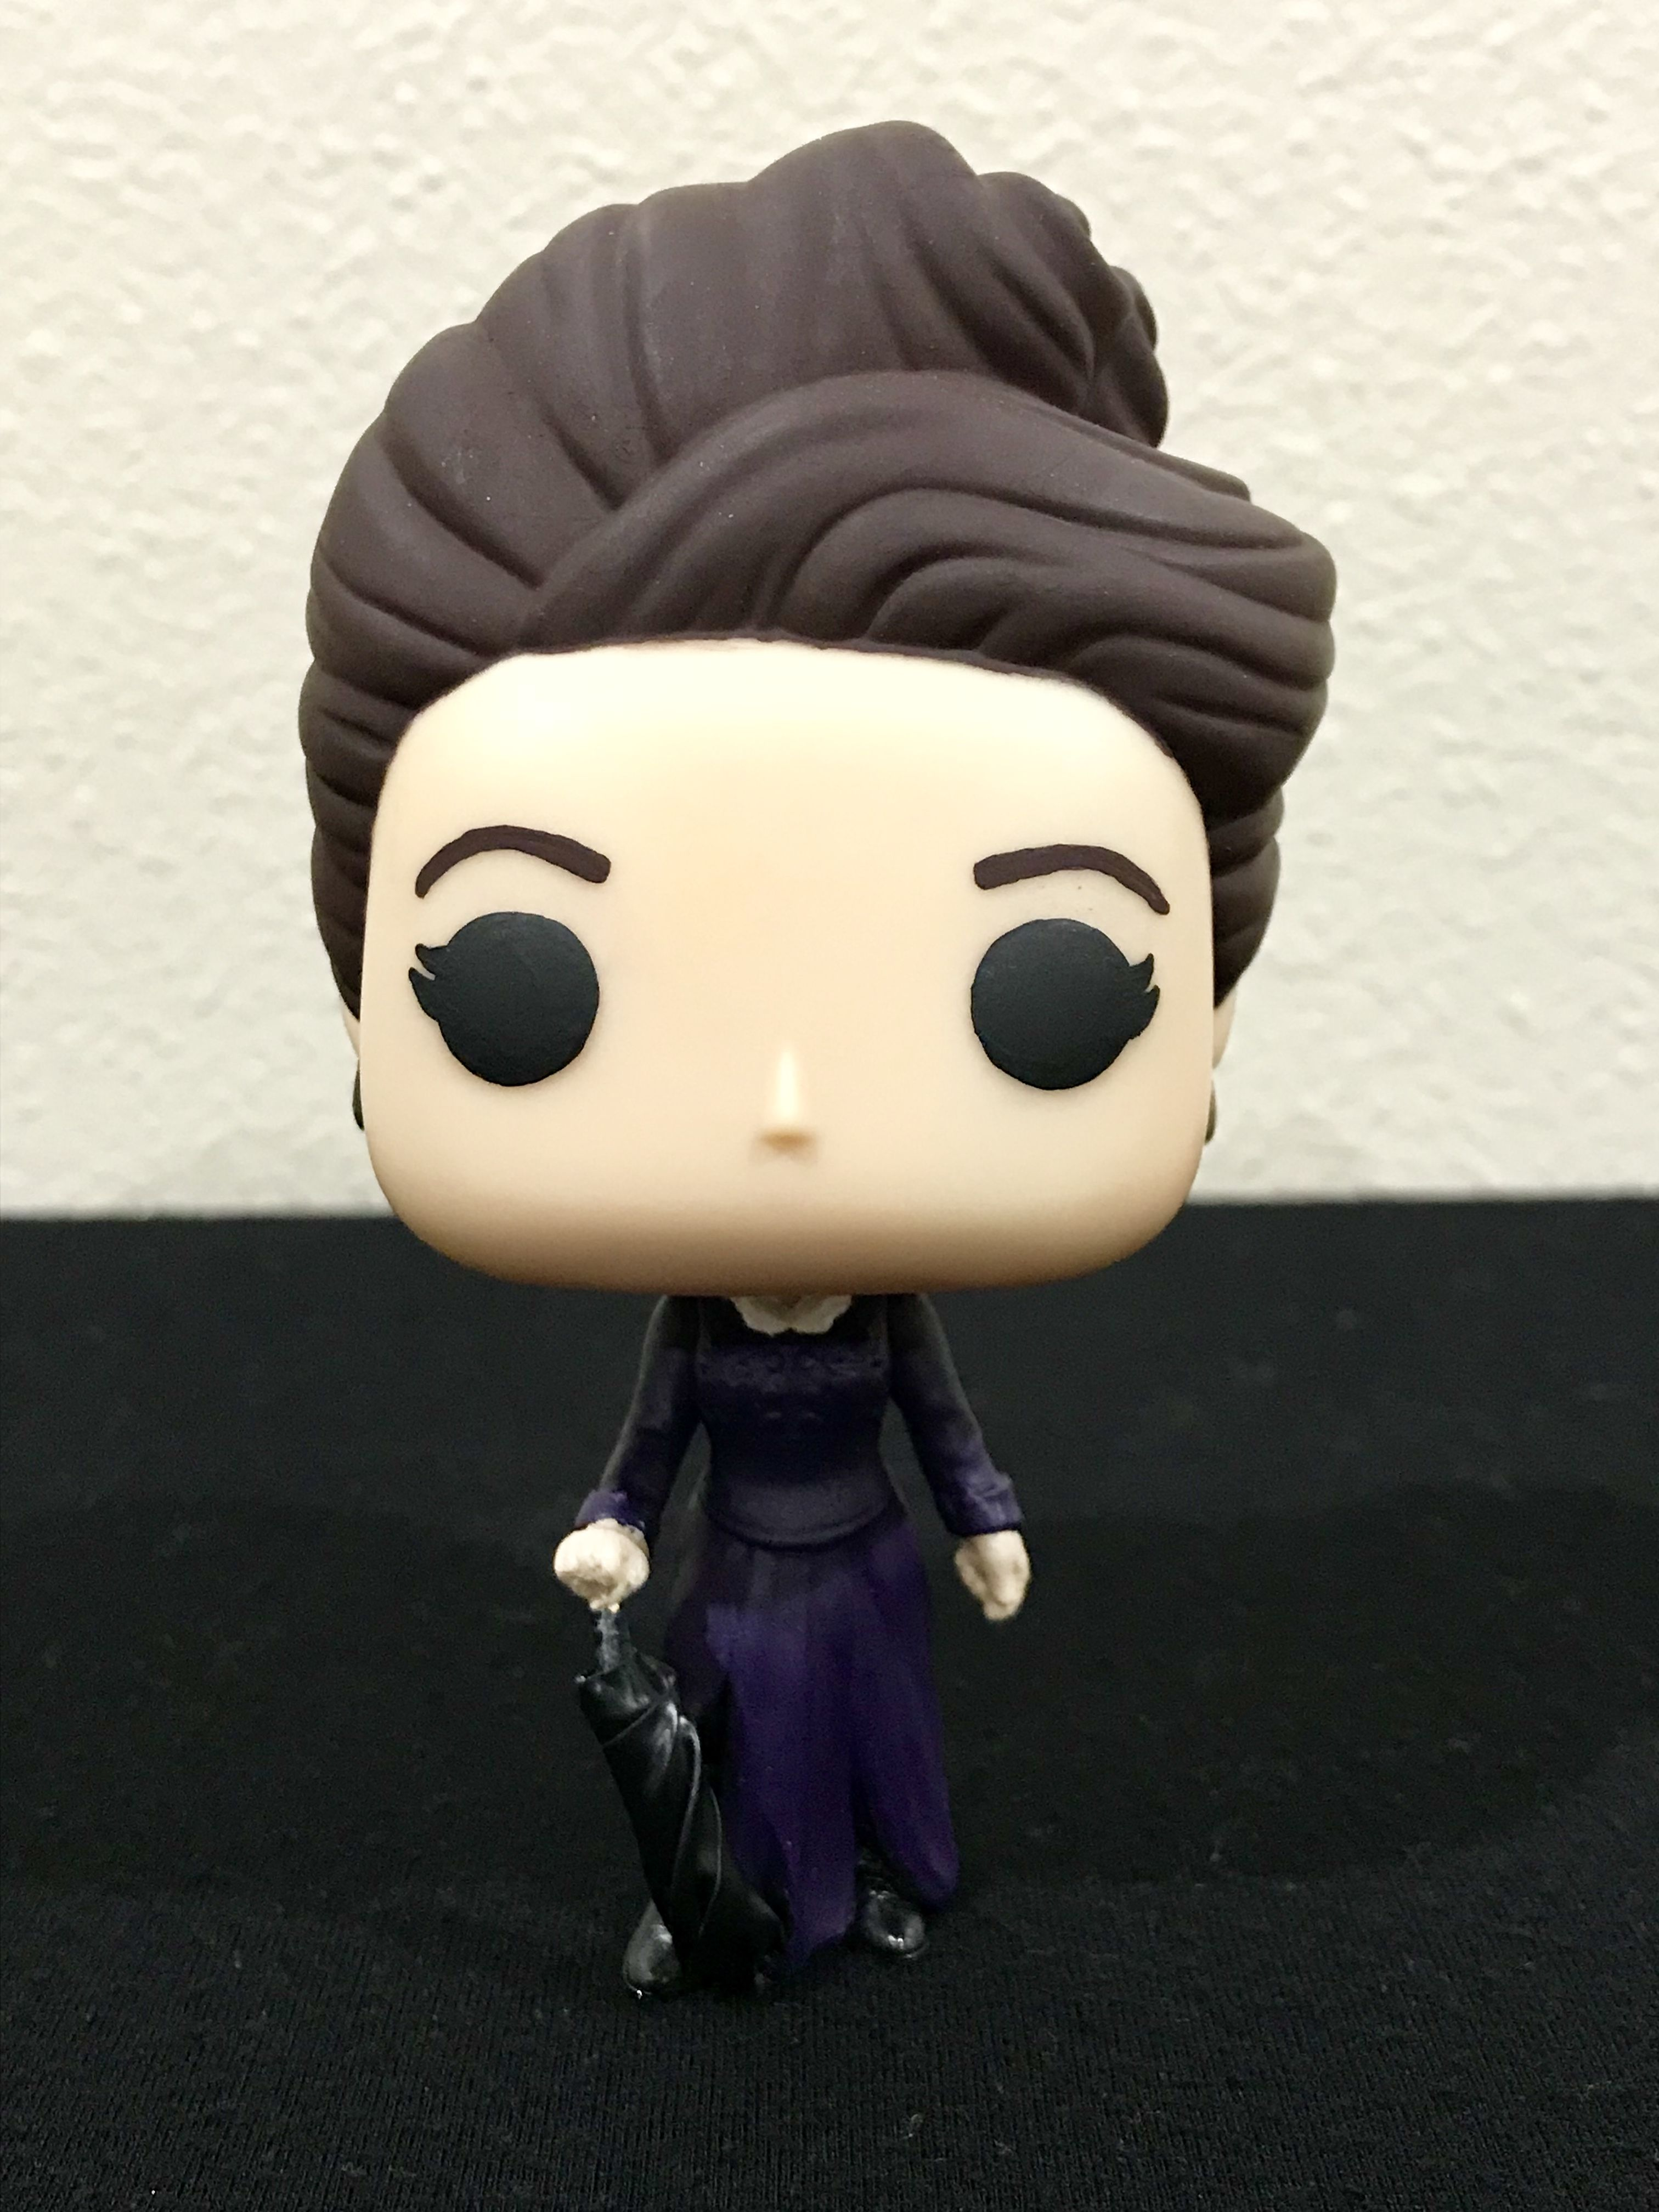 Édition limitée Doctor Who-Missy-Collector Figurine-Violet